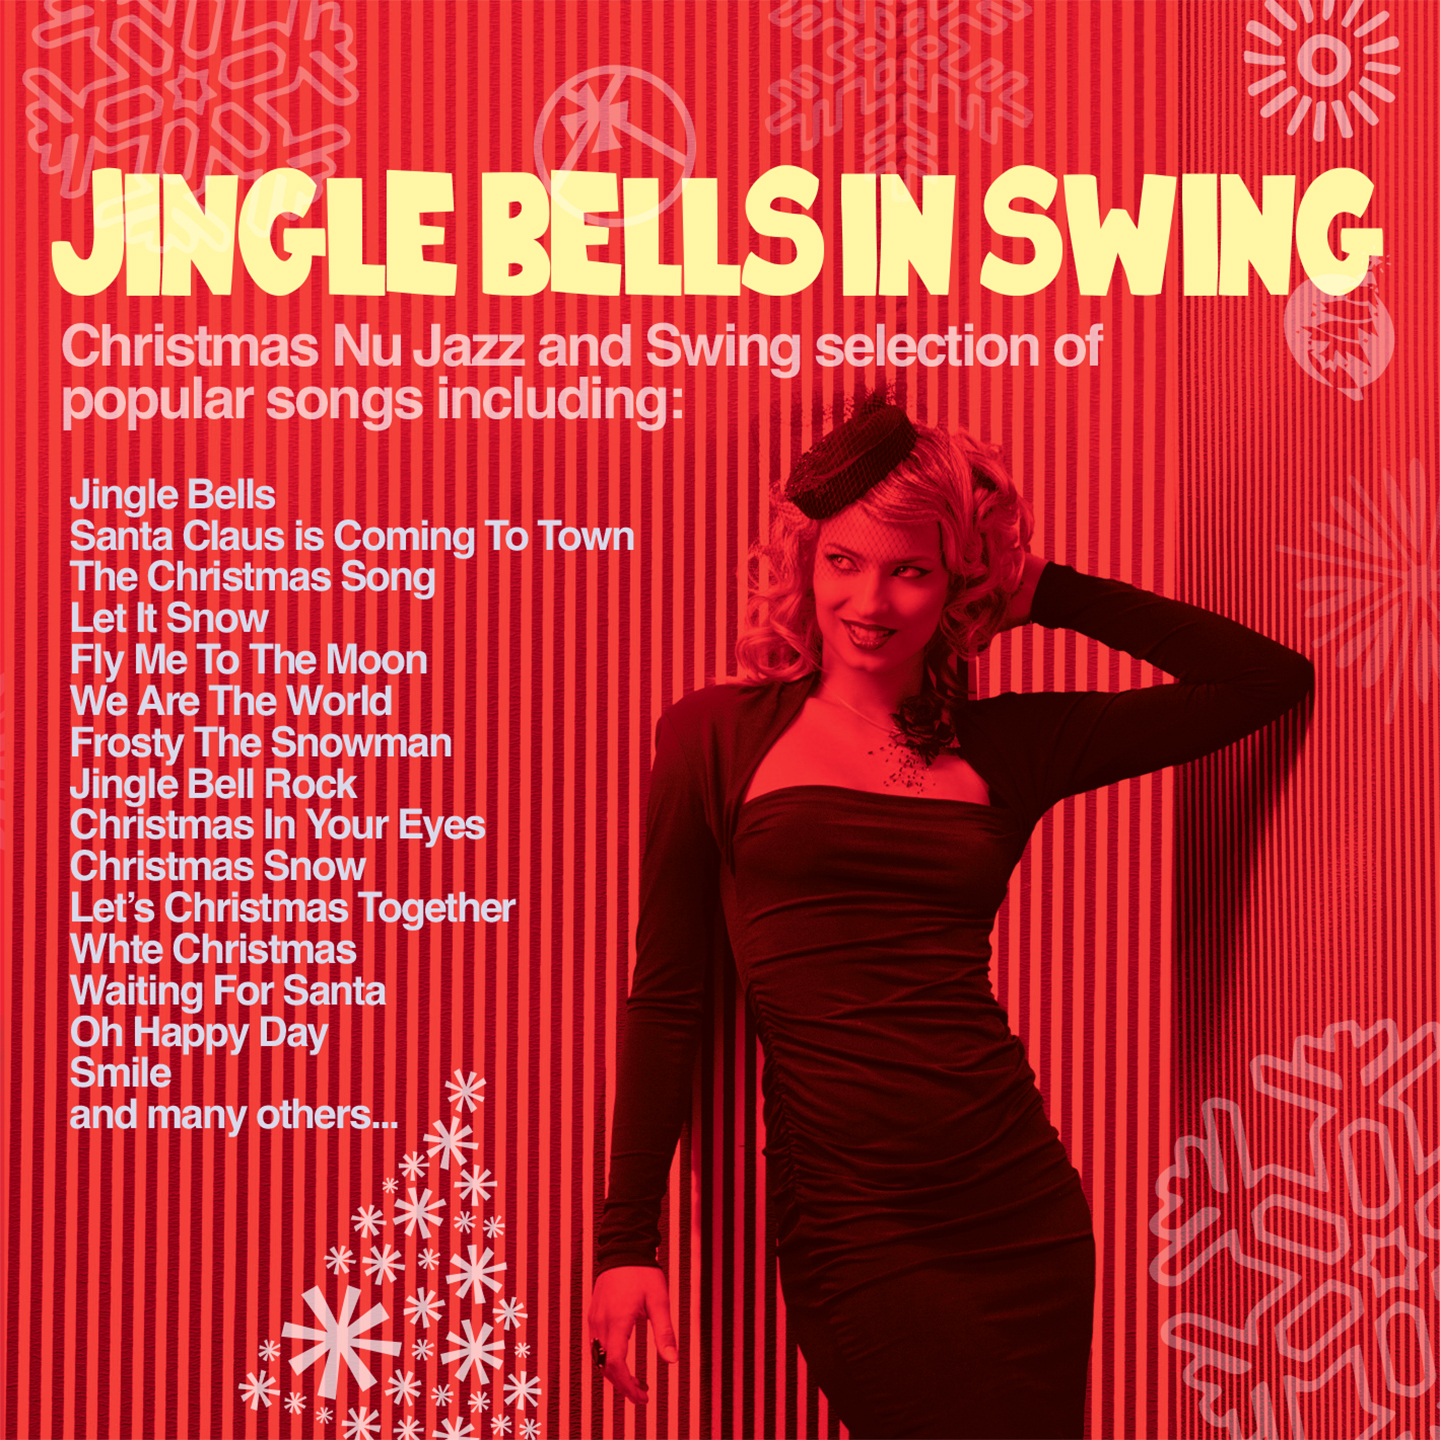 Jingle Bells In Swing